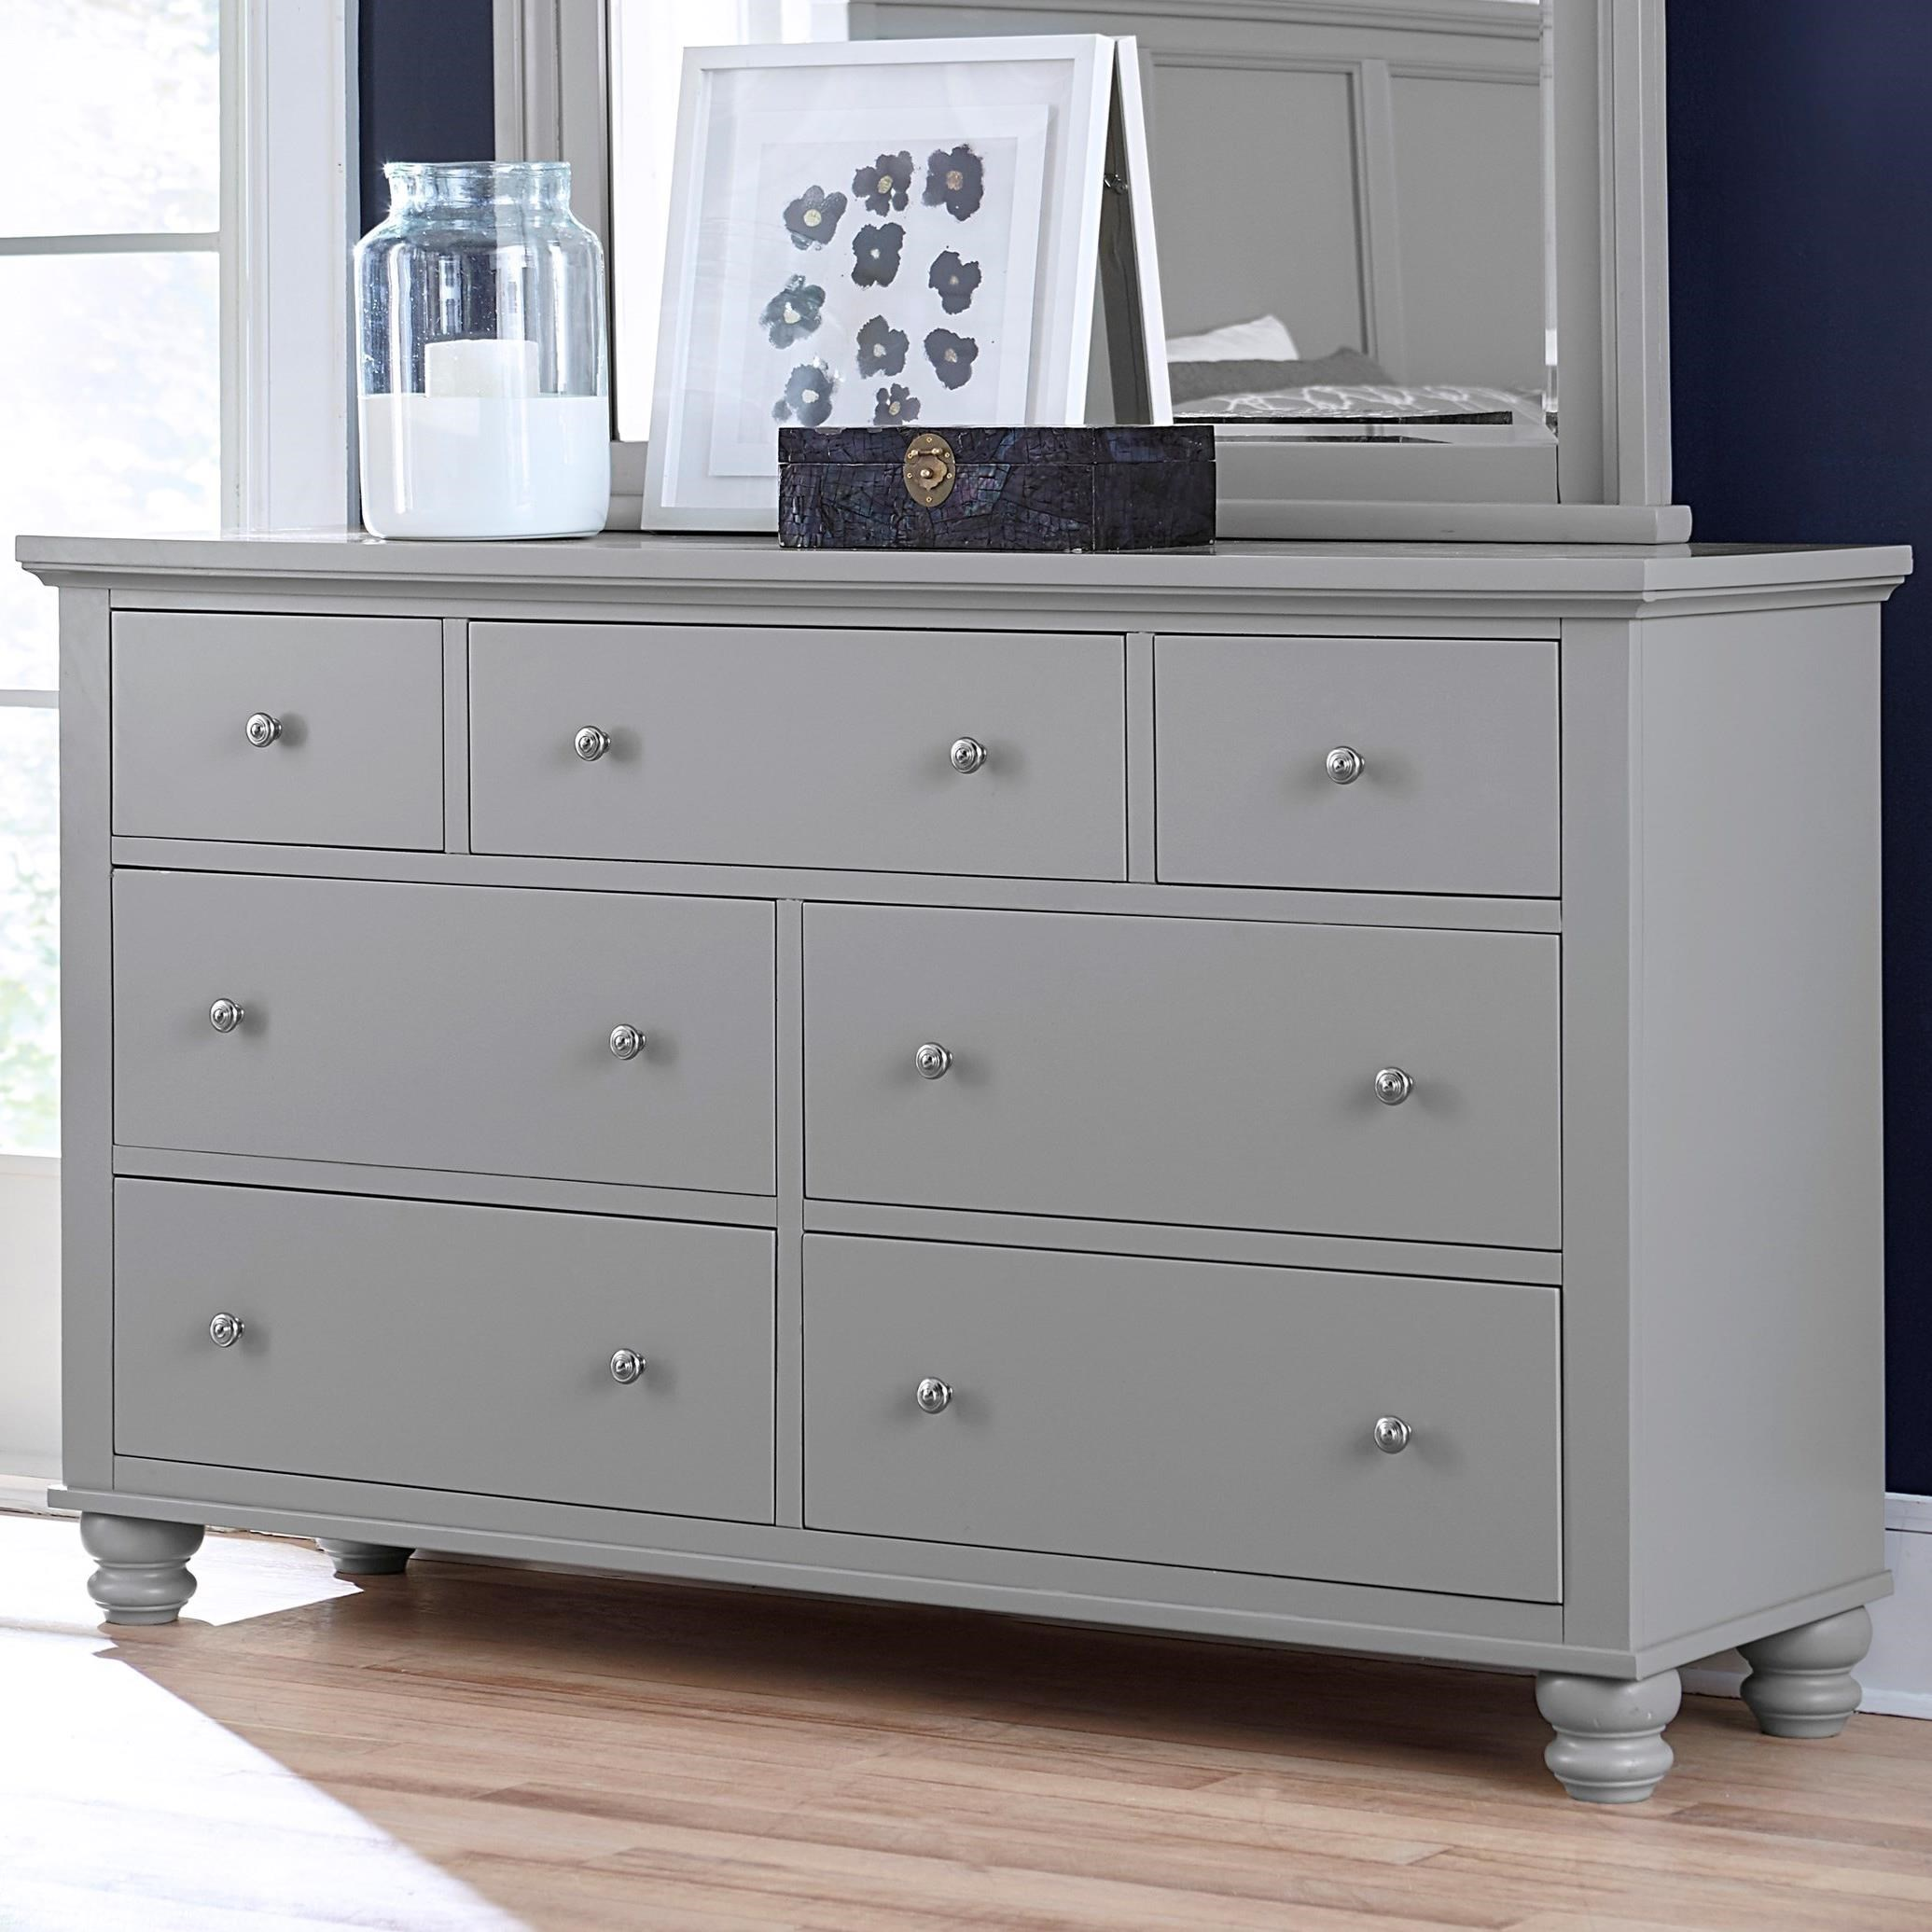 Cambridge 7 Drawer Double Dresser  by Aspenhome at Walker's Furniture